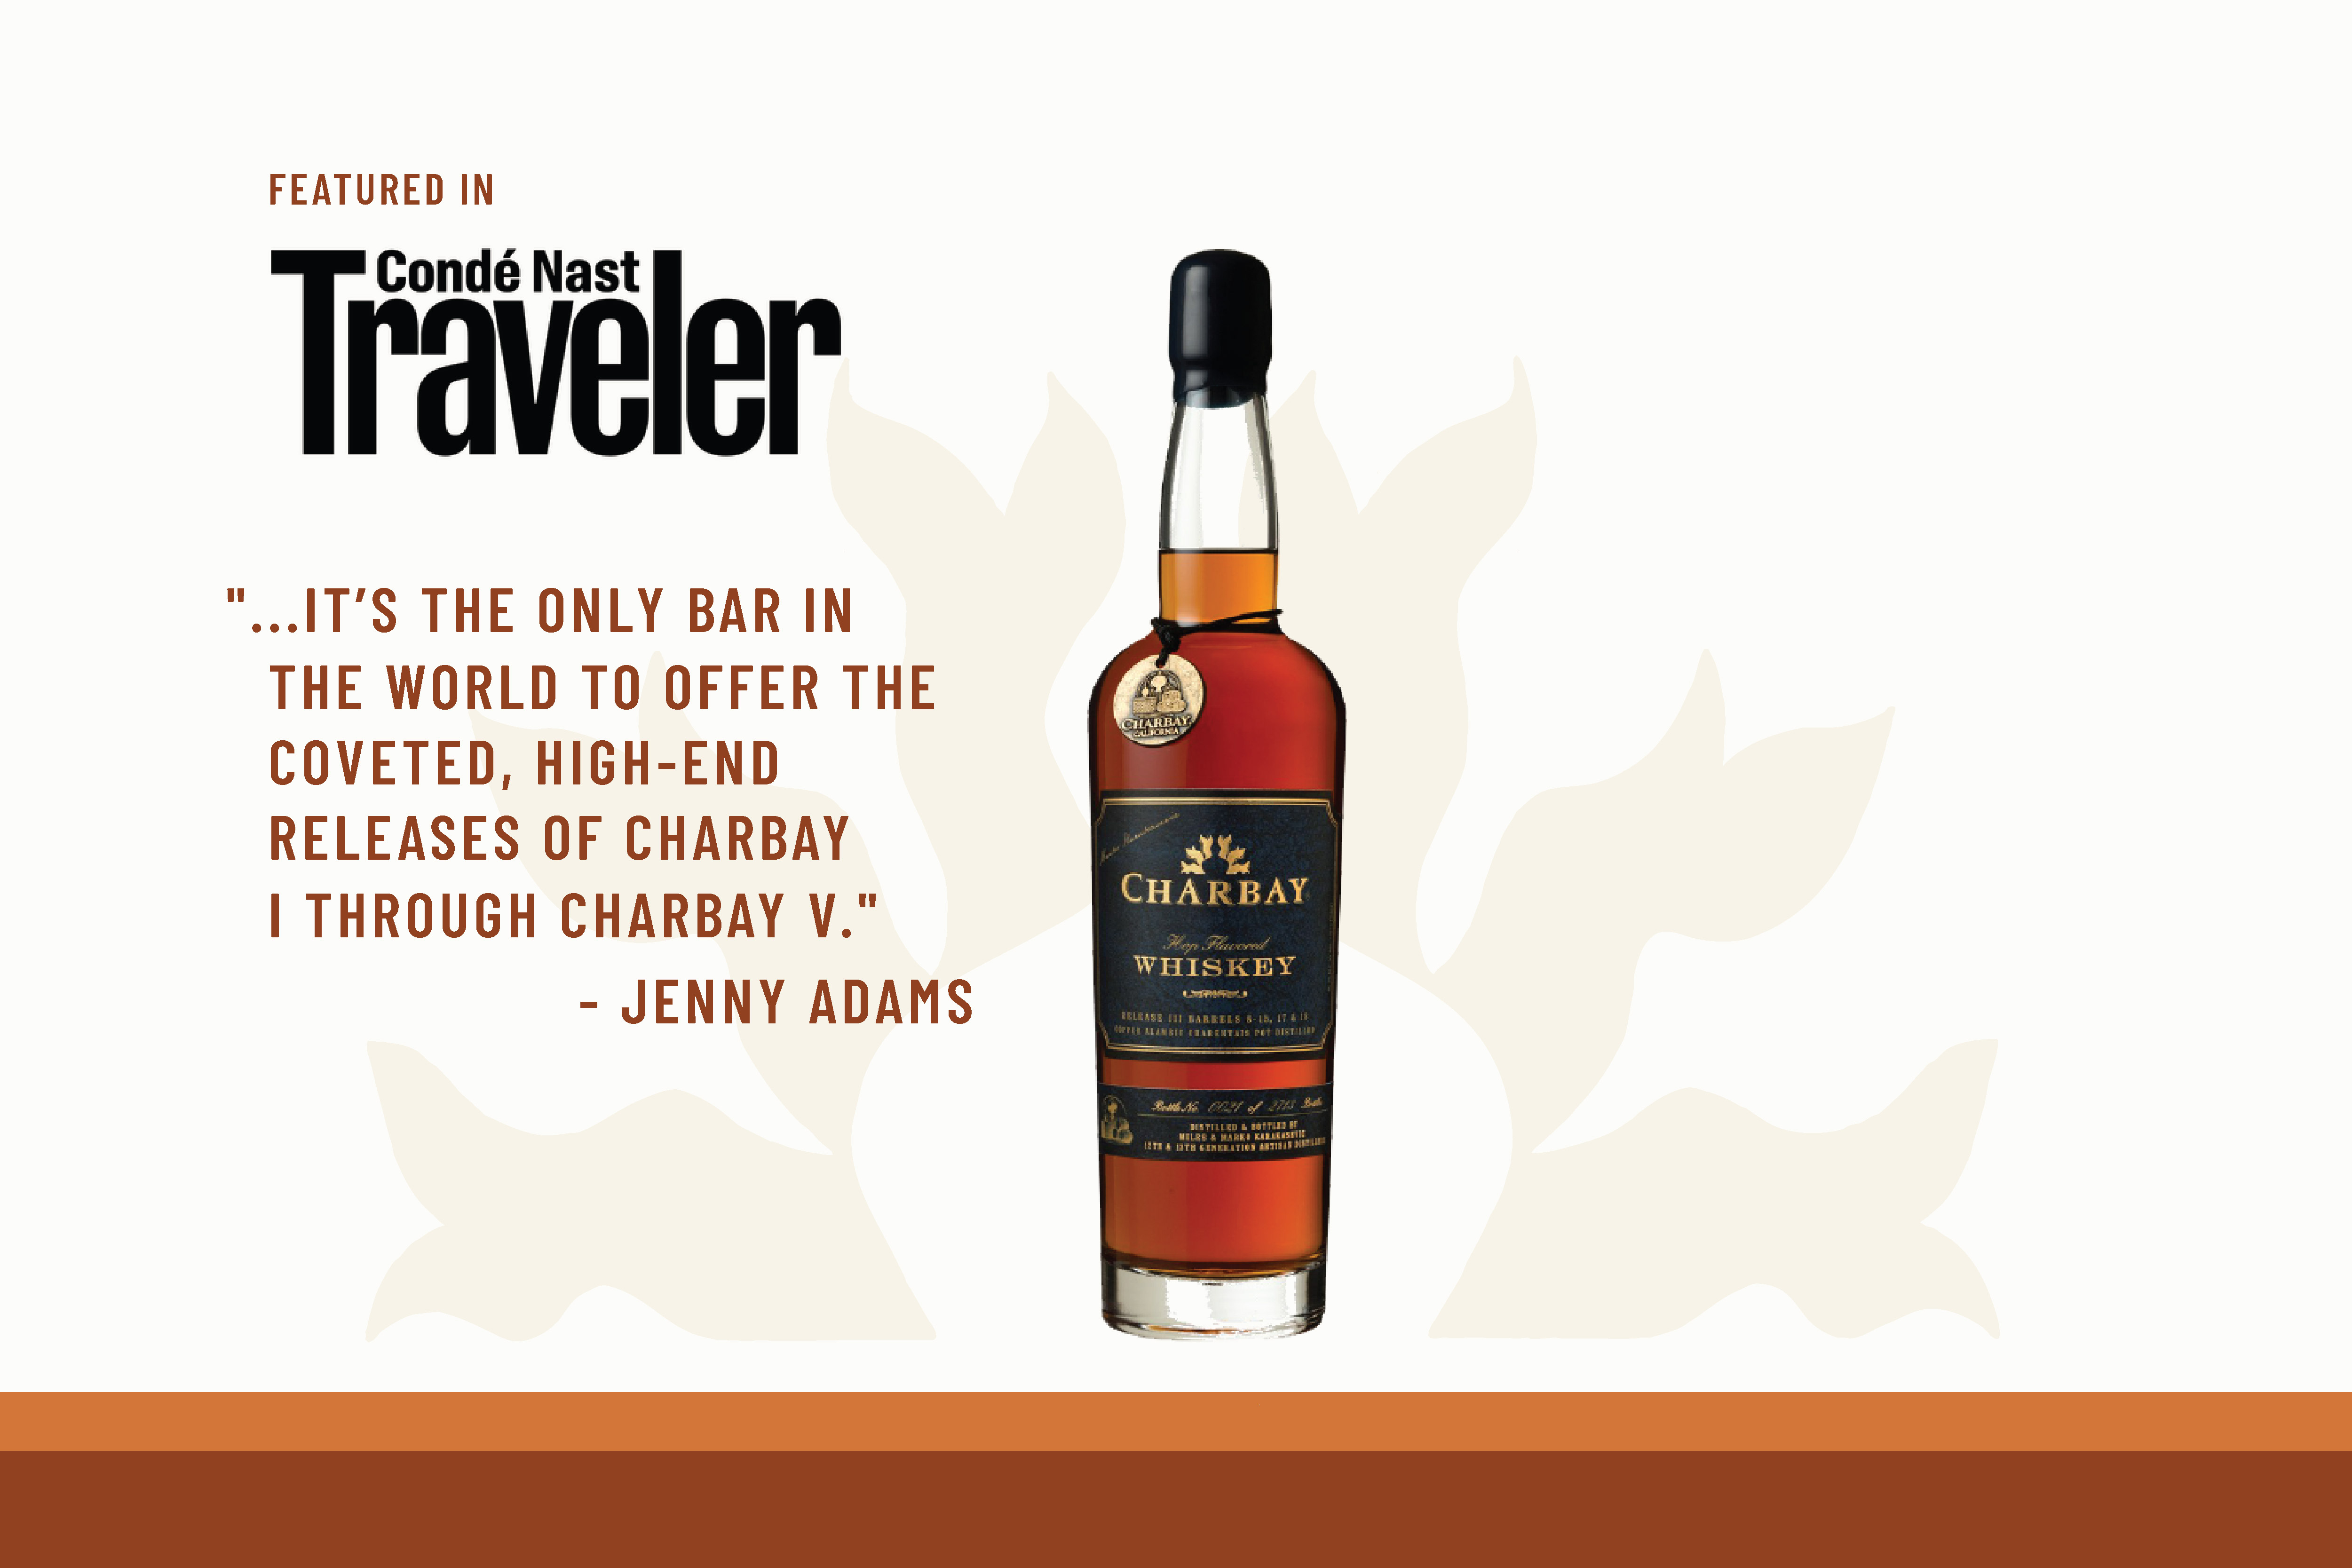 Charbay Conde Nast Traveler Article Pilsner Whiskey